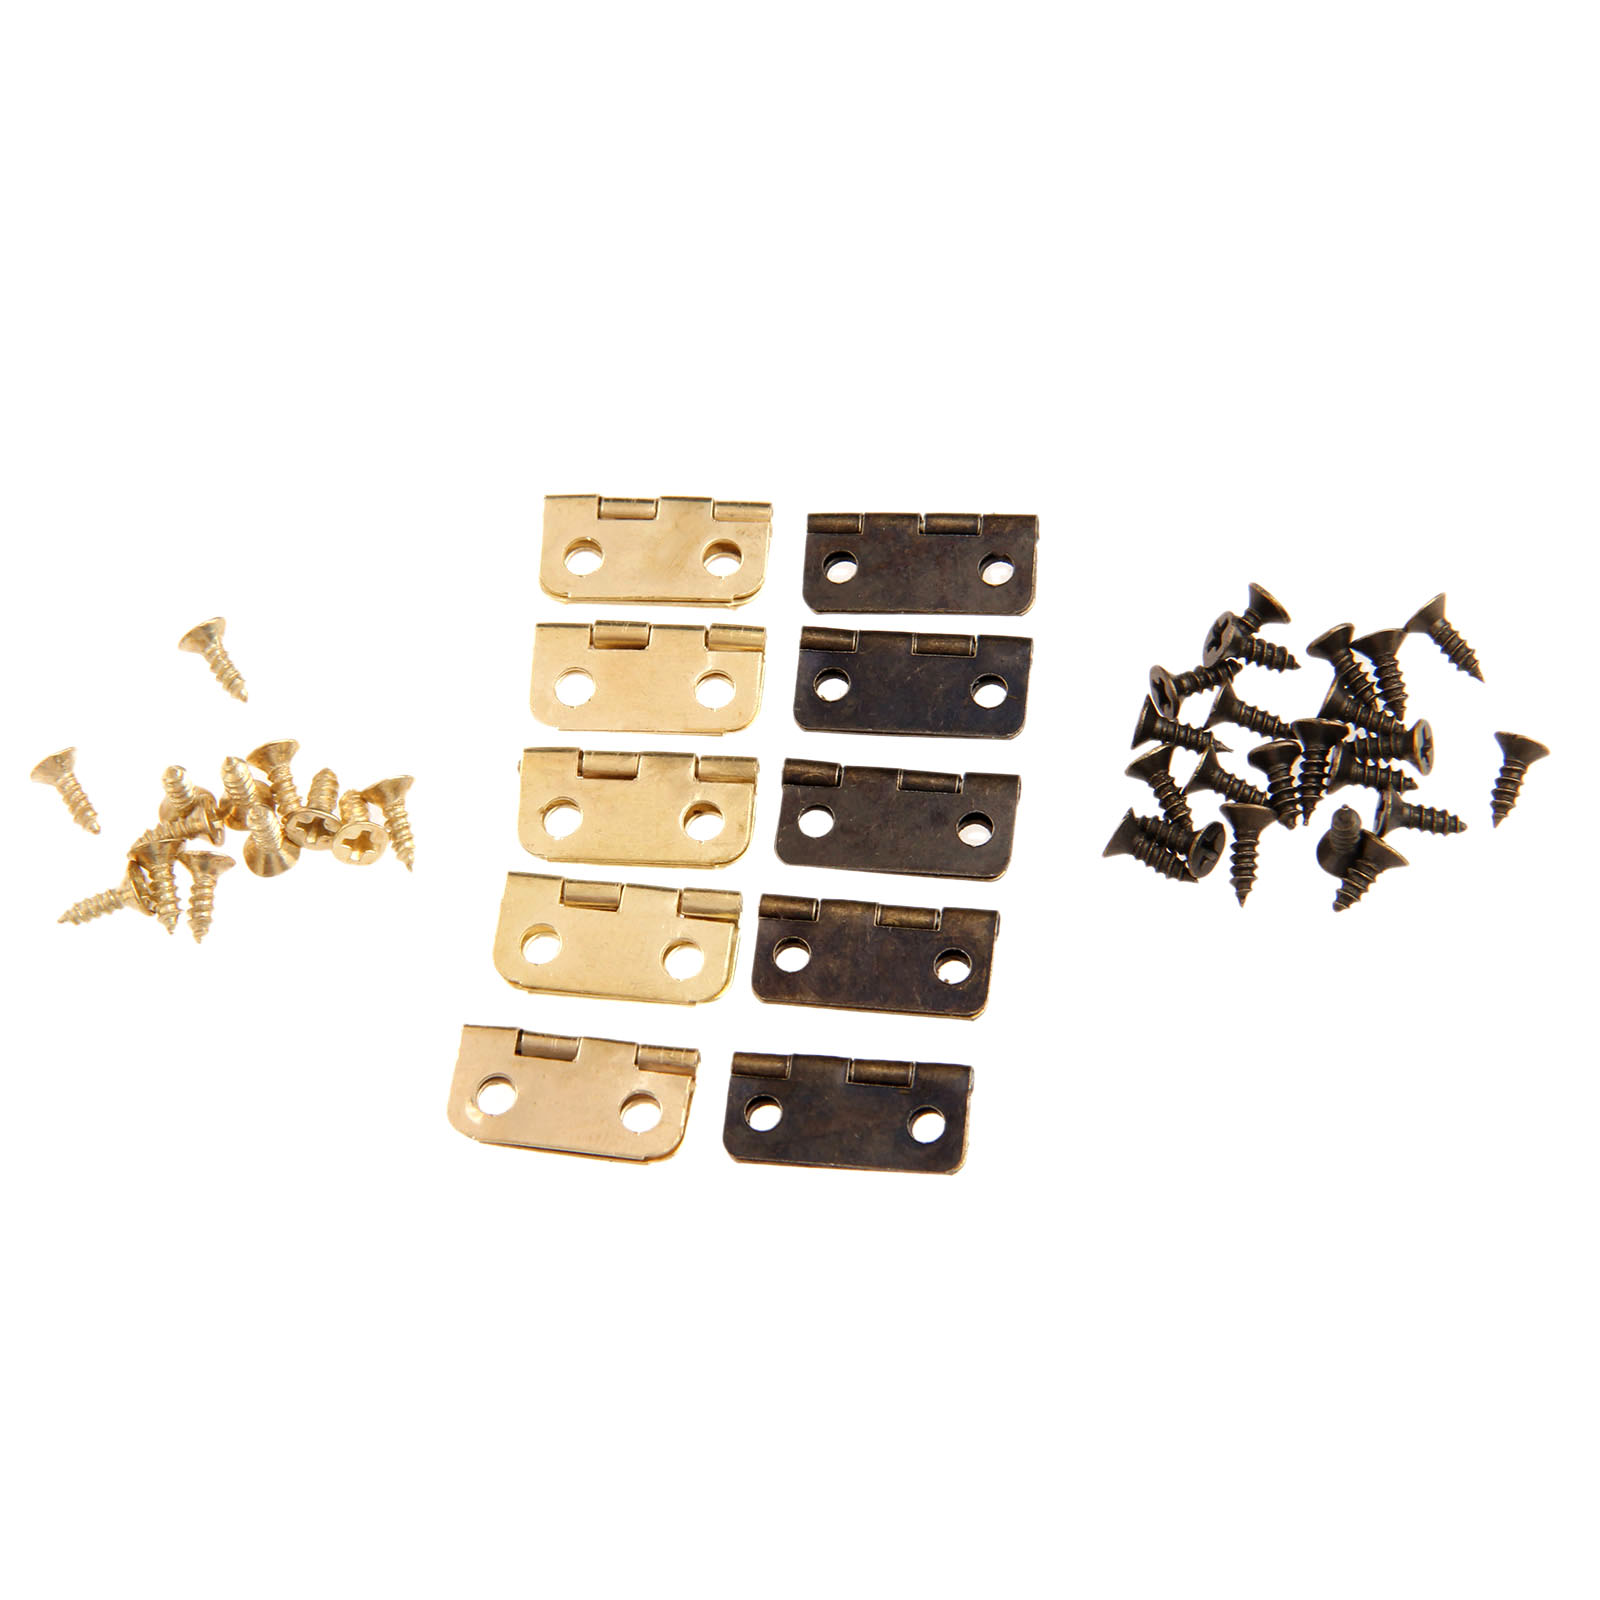 bản lề đồ nội thất bằng đồng - 10Pcs Antique Bronze/Gold Cabinet Hinges Furniture Accessories Jewelry Boxes Small Hinge Furniture Fittings For Cabinets 16x13mm